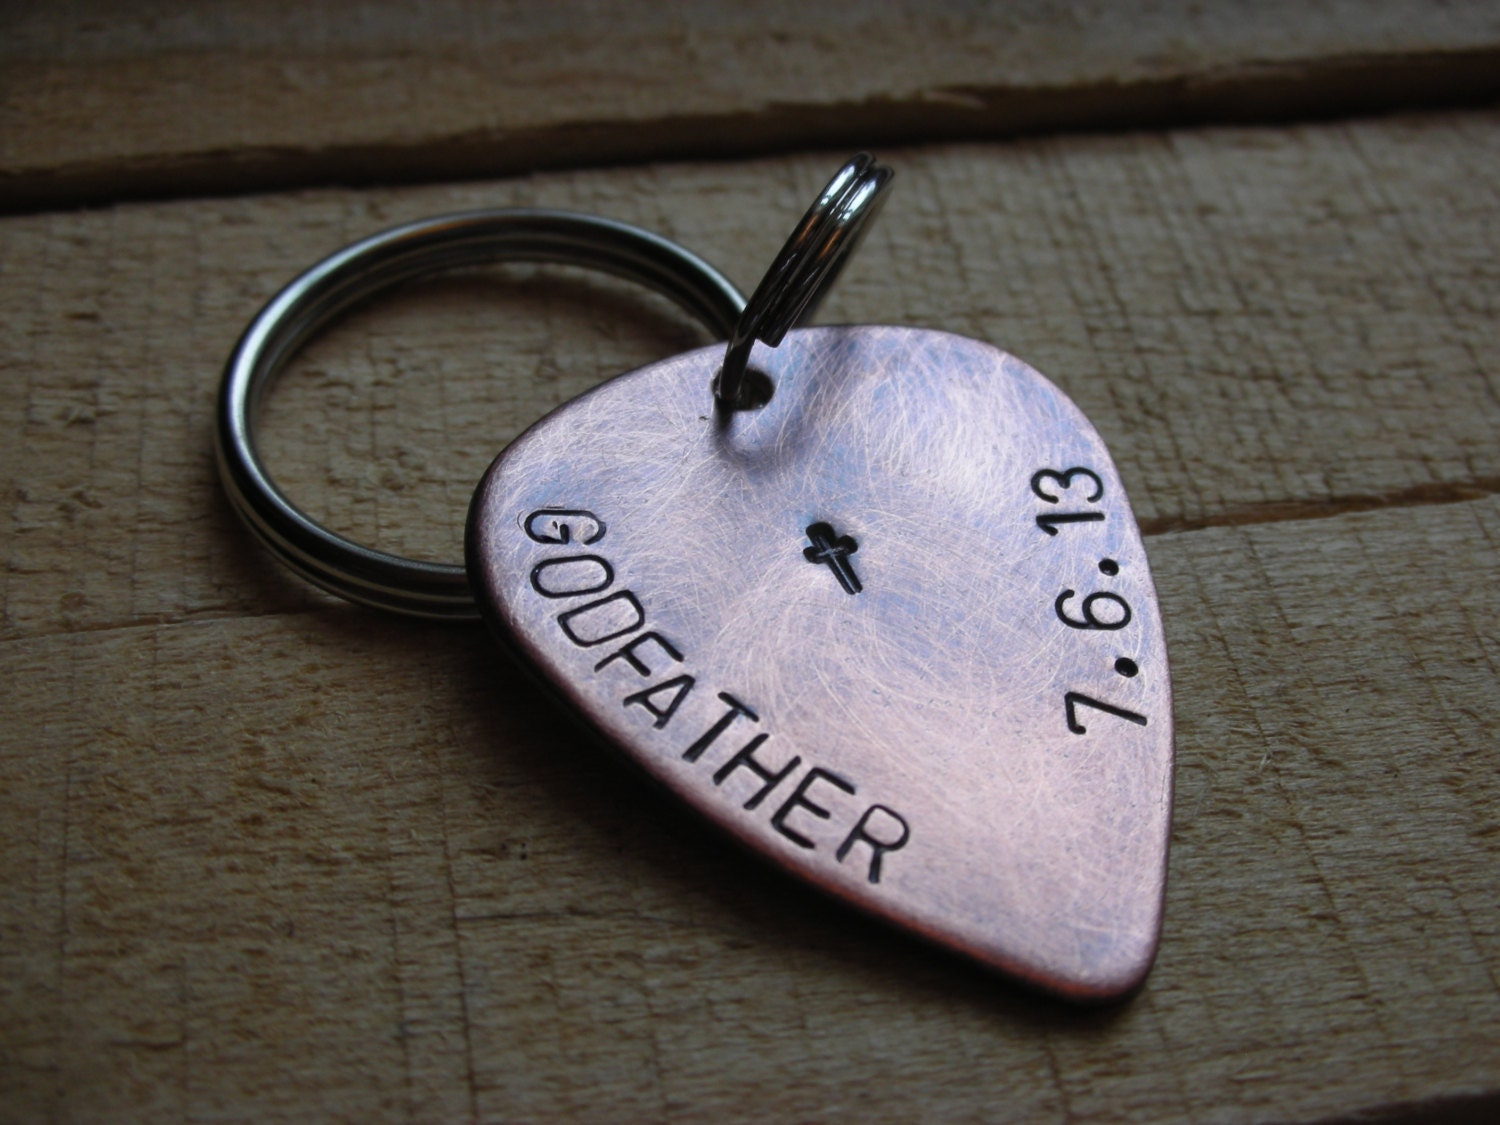 Gift For Godmother Godmother Gift Mothers Day Gift: Godparent Guitar Pick Keychain Gift For Godfather-Gift For